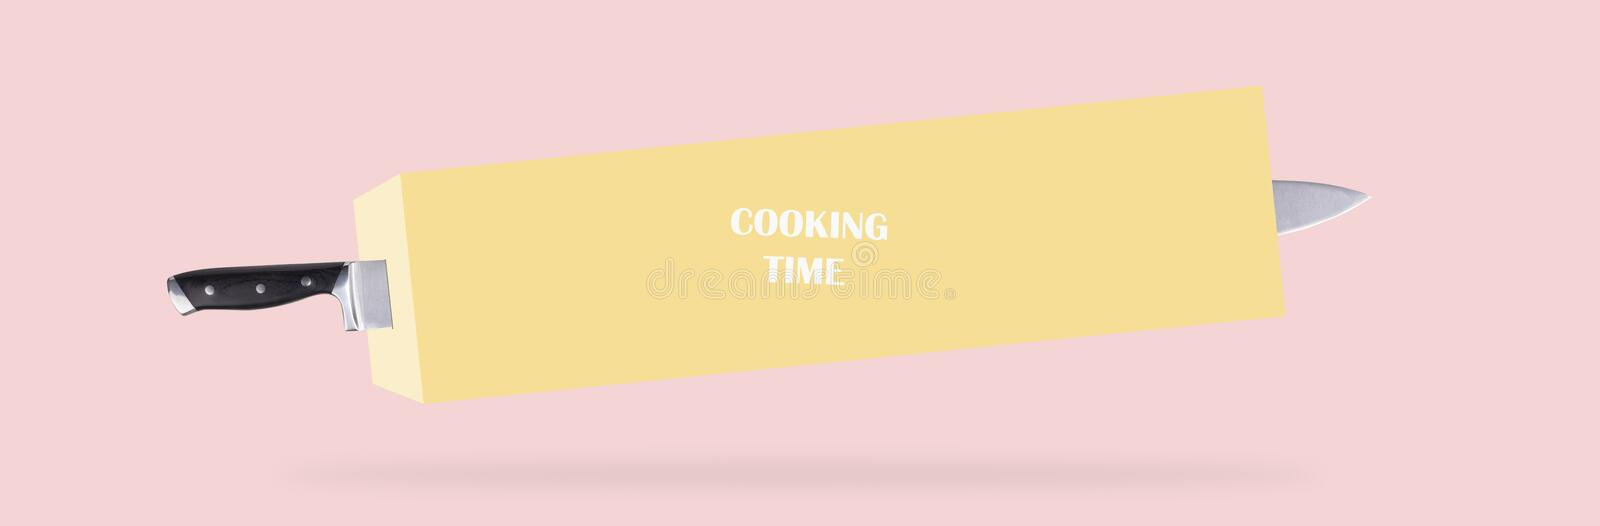 Knife and cooking time. Levitating knife stucked  in stylized butter, over pink background, cooking time concept, panoramic image royalty free stock image